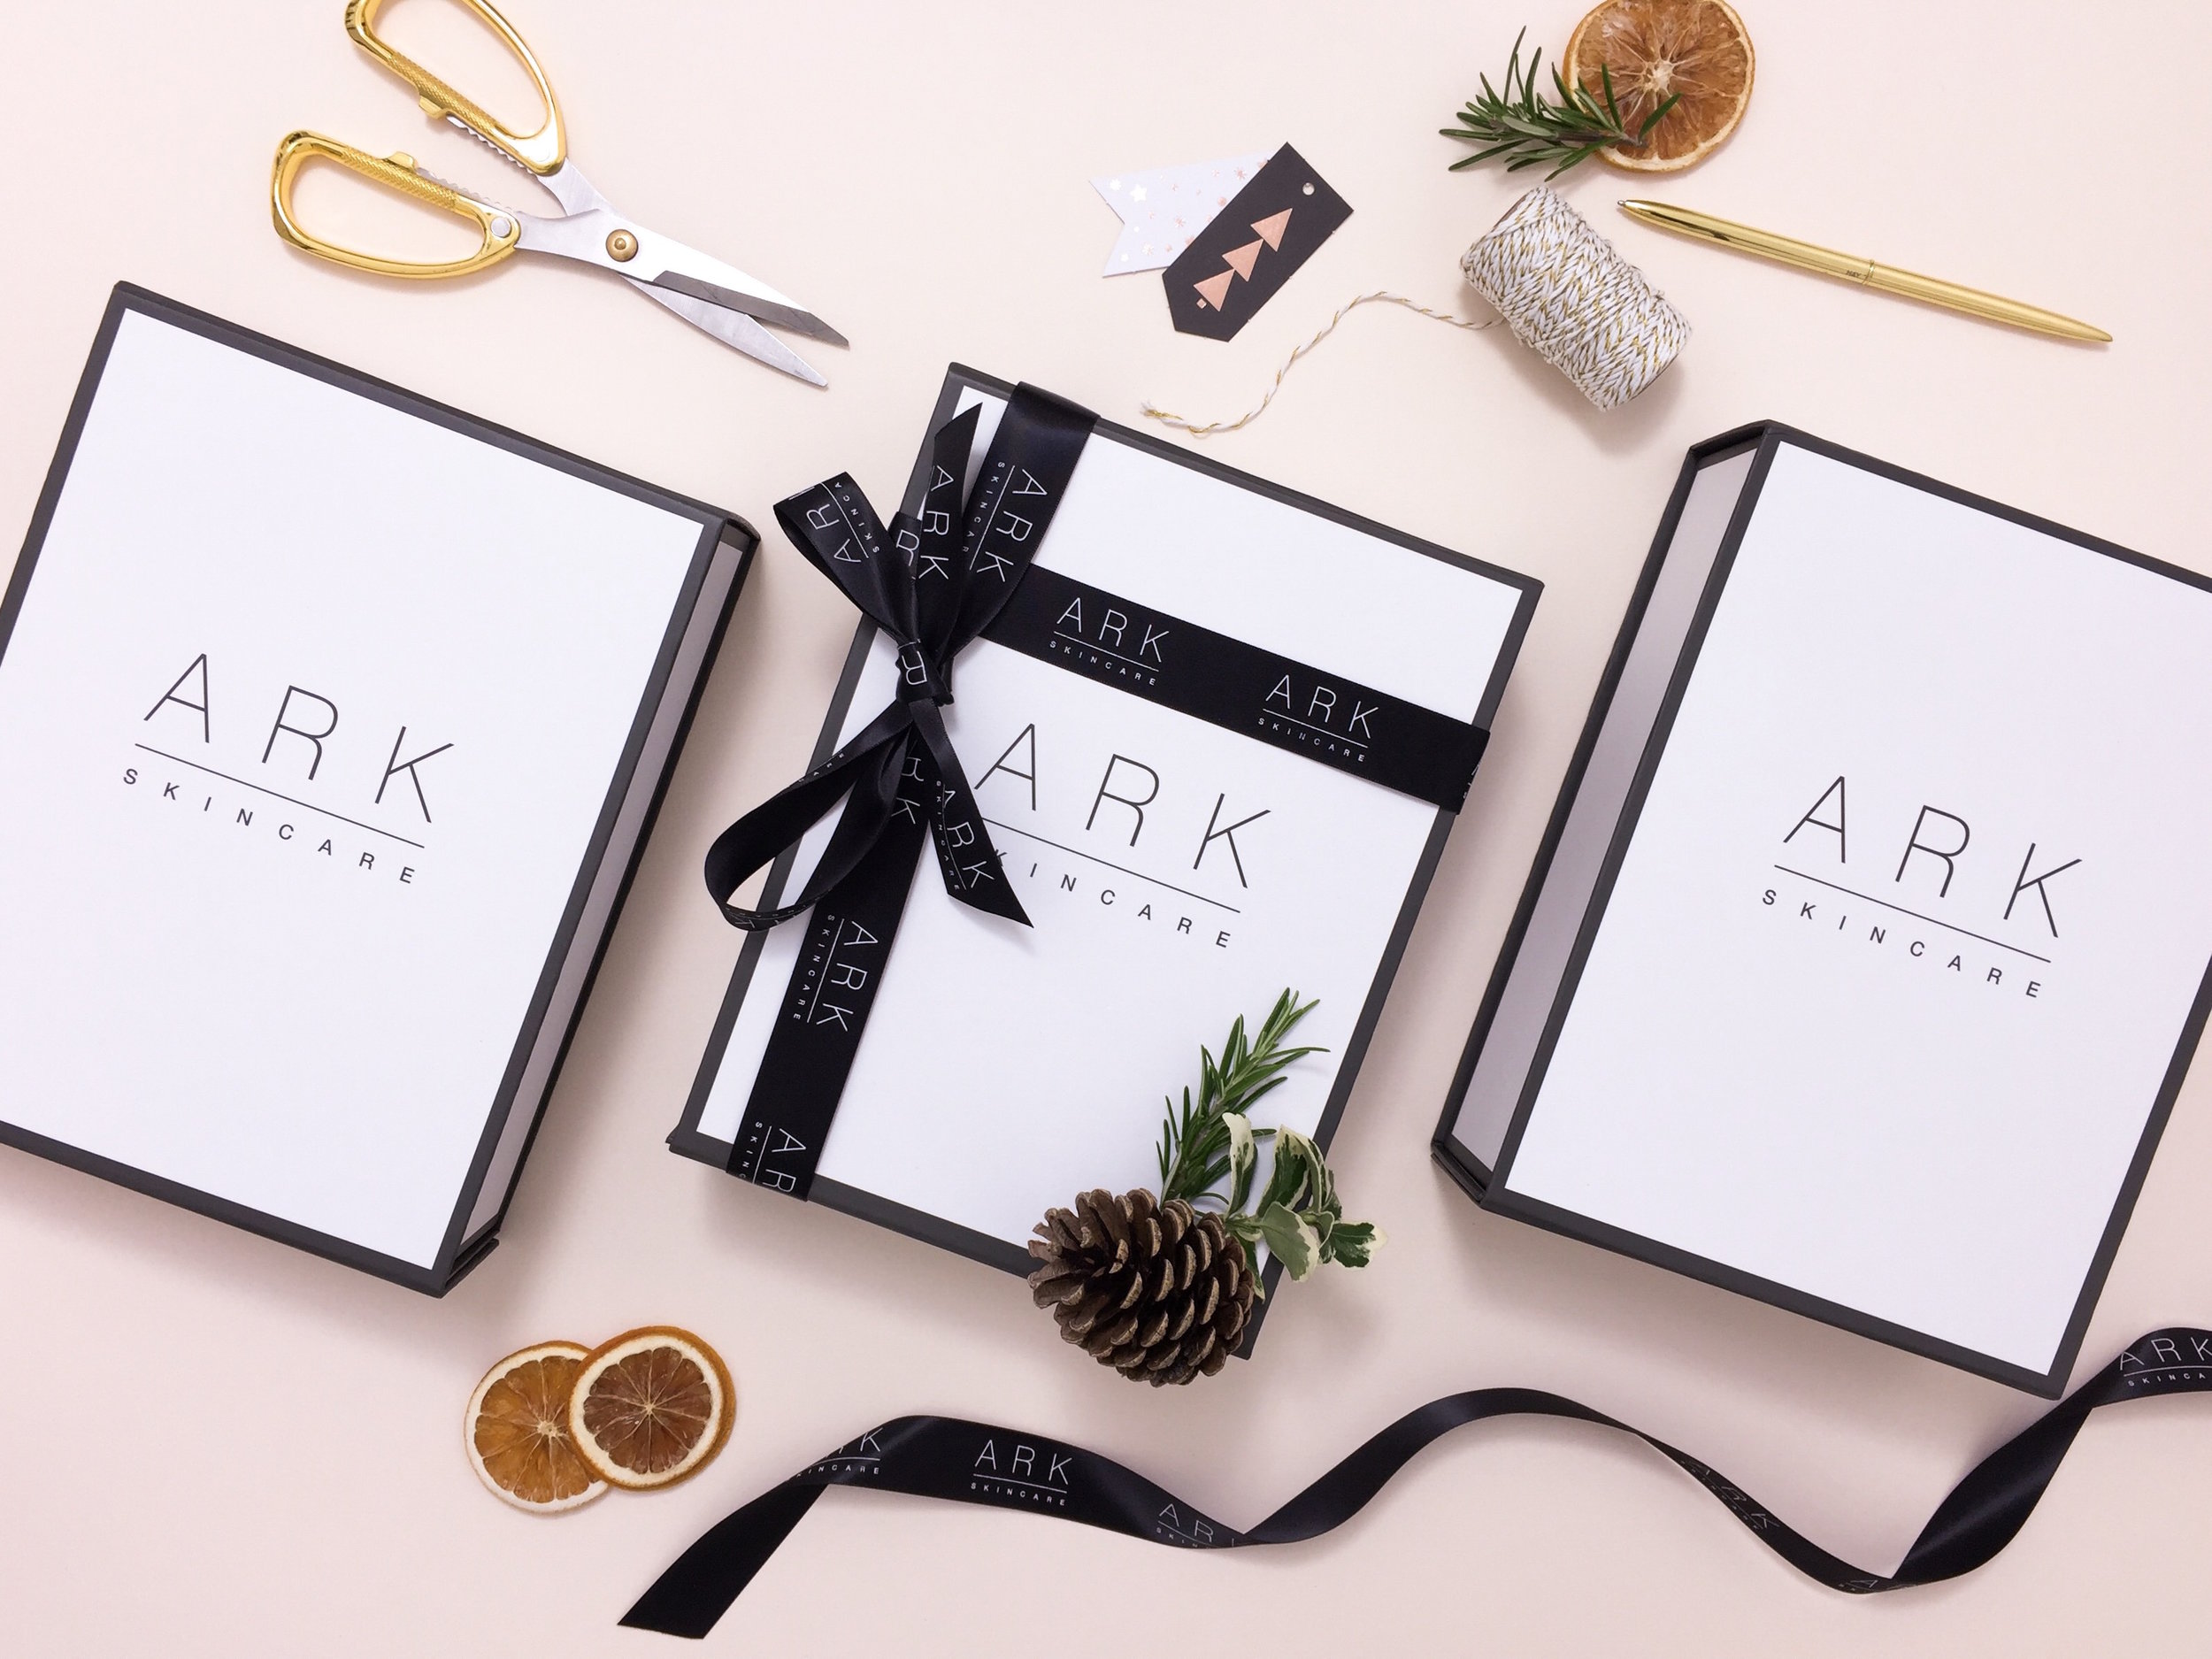 ARK Gift Wrapping 3 copy.JPG